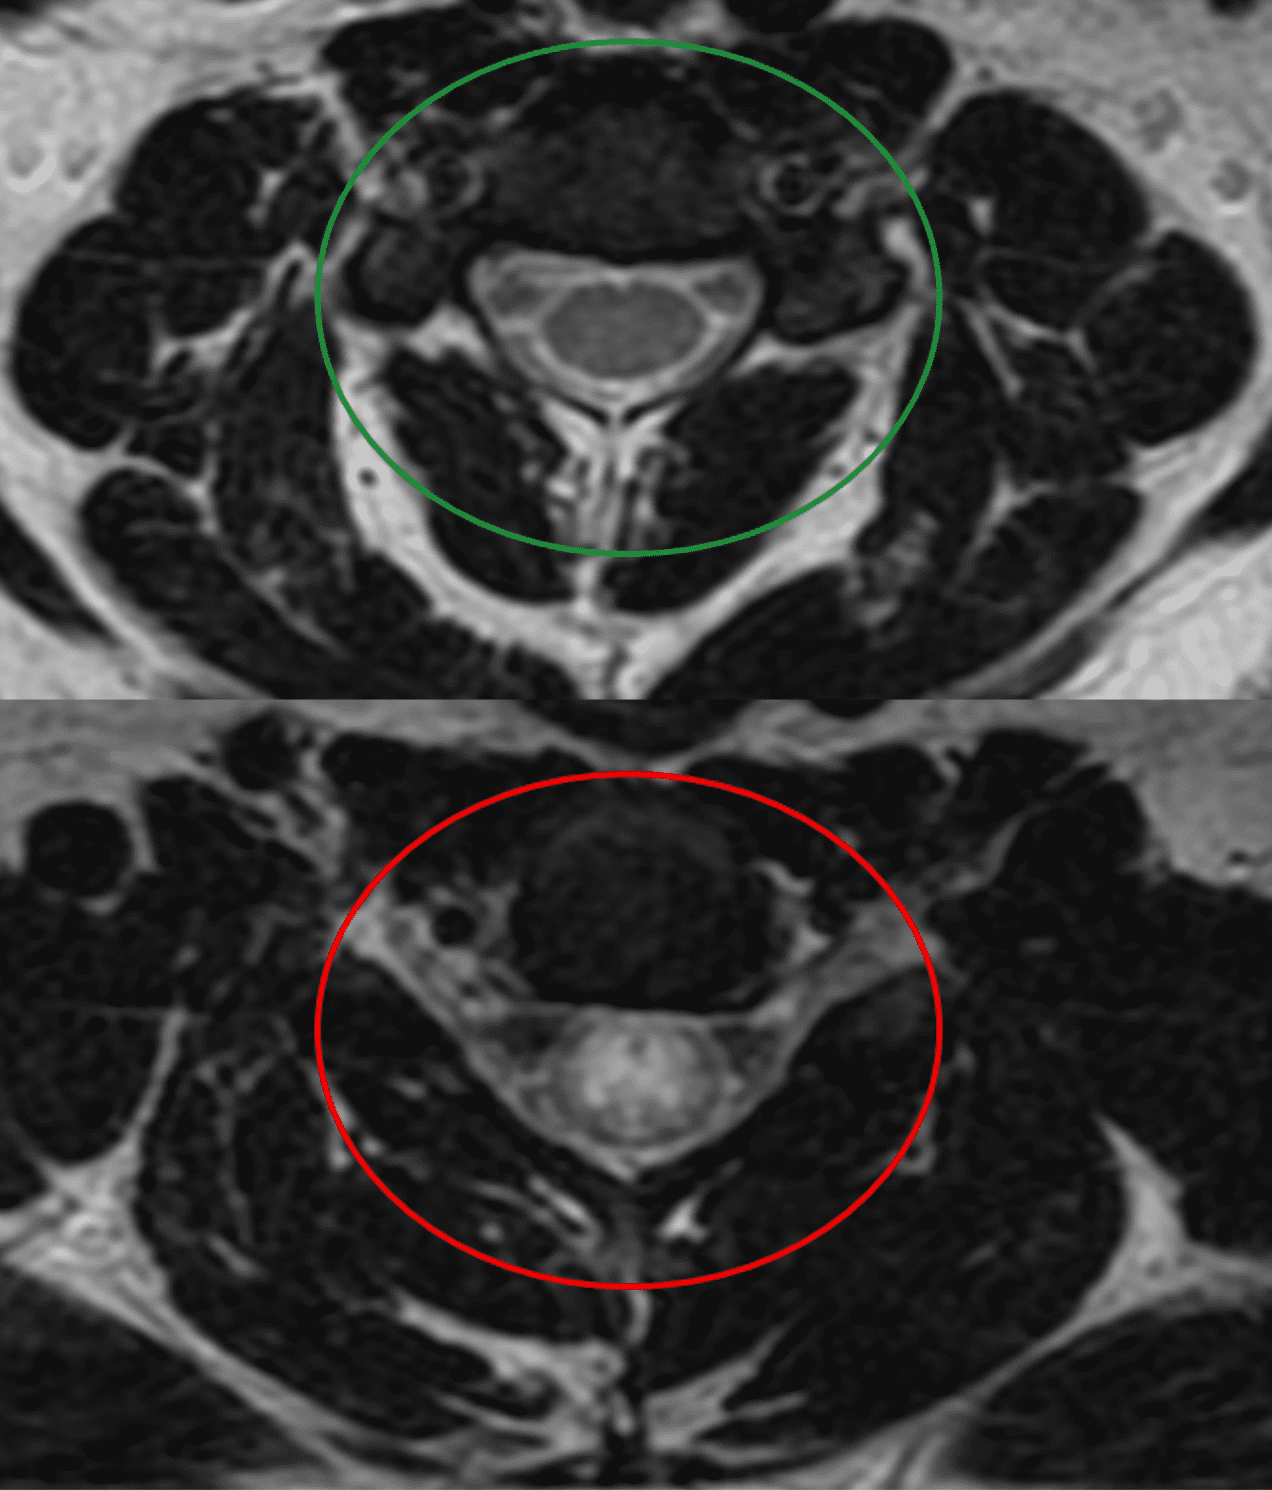 Axial T2 MRI of cervical spine demonstrating normal cord signal (green circle) and abnormal increased T2 signal in the central cord (red circle) with transverse myelitis. Image by JasonRobertYoungMD, via Wikimedia Commons, CC BY-SA 4.0, no changes.